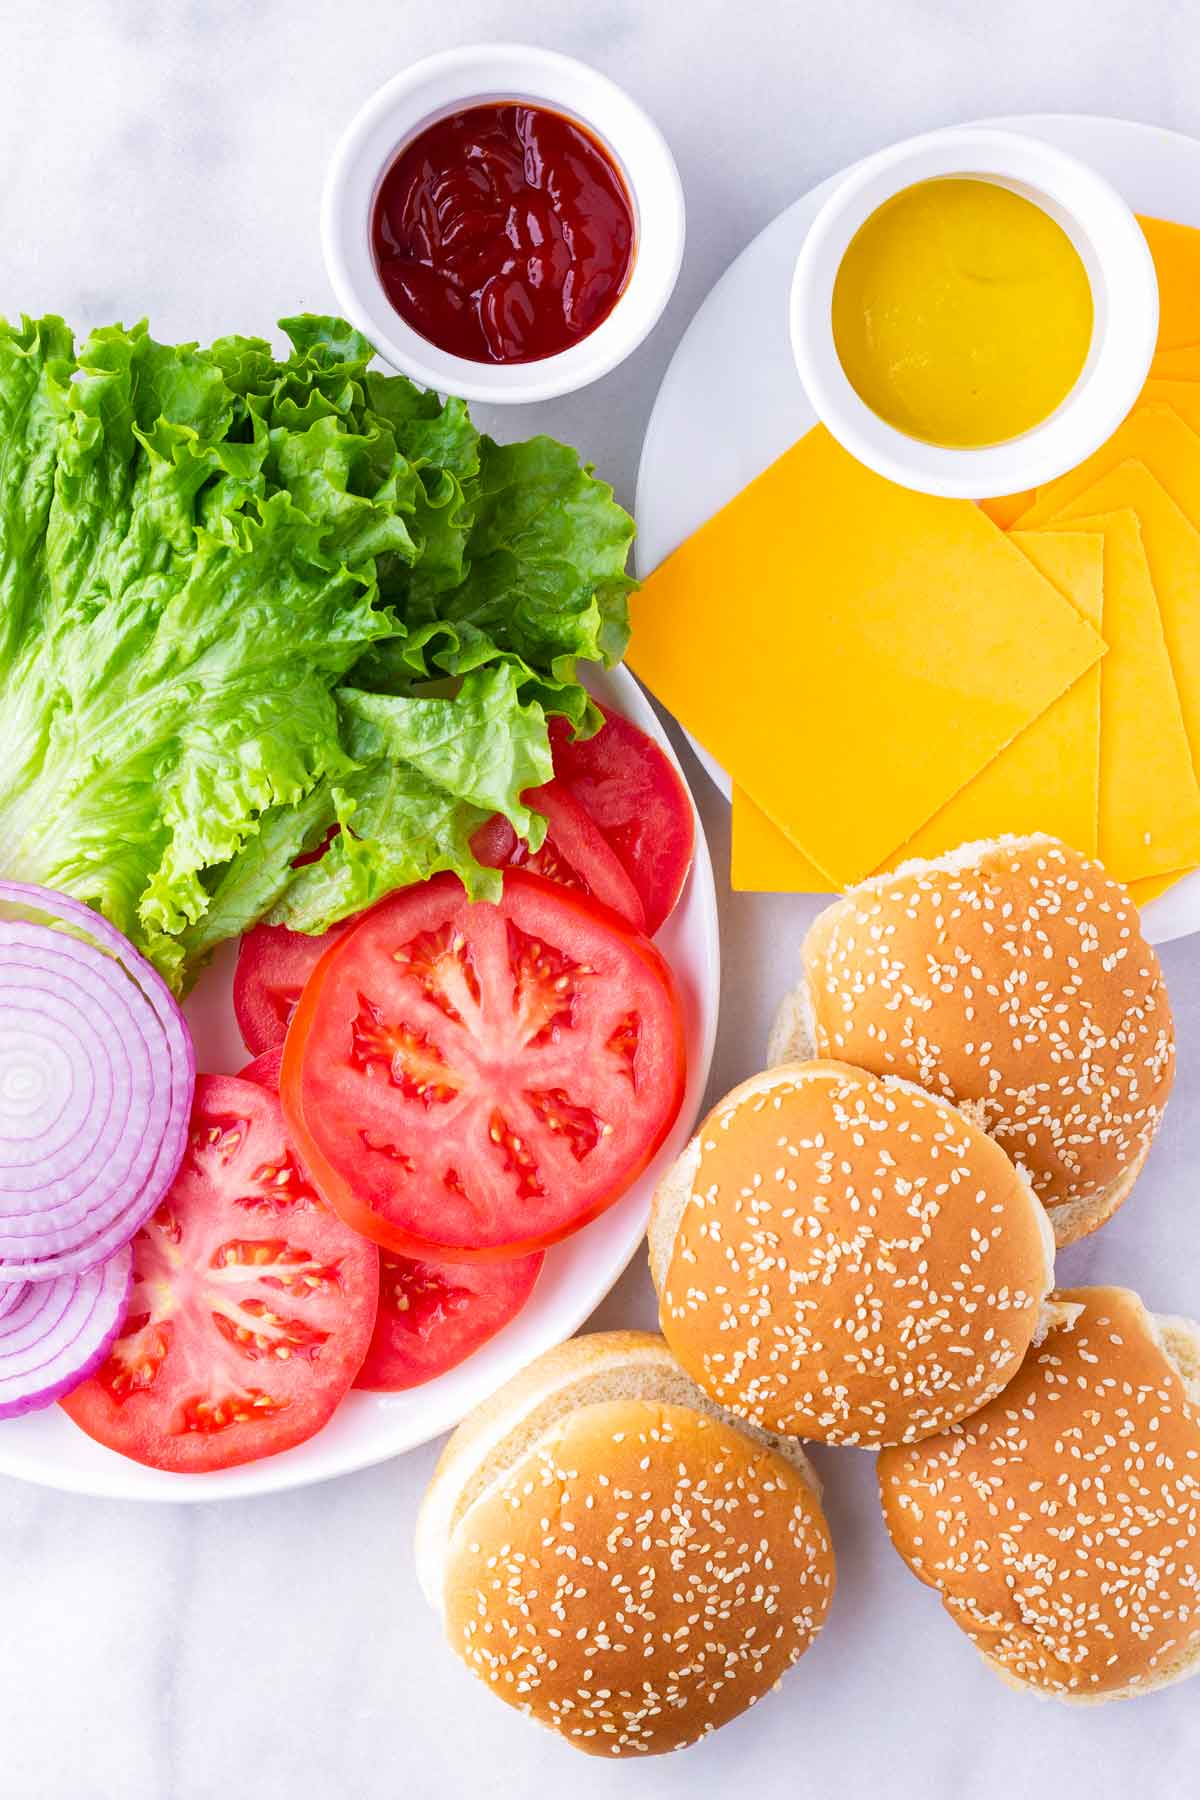 a spread of sesame buns, lettuce, tomatoes, onions, cheddar slices, ketchup, and mustard